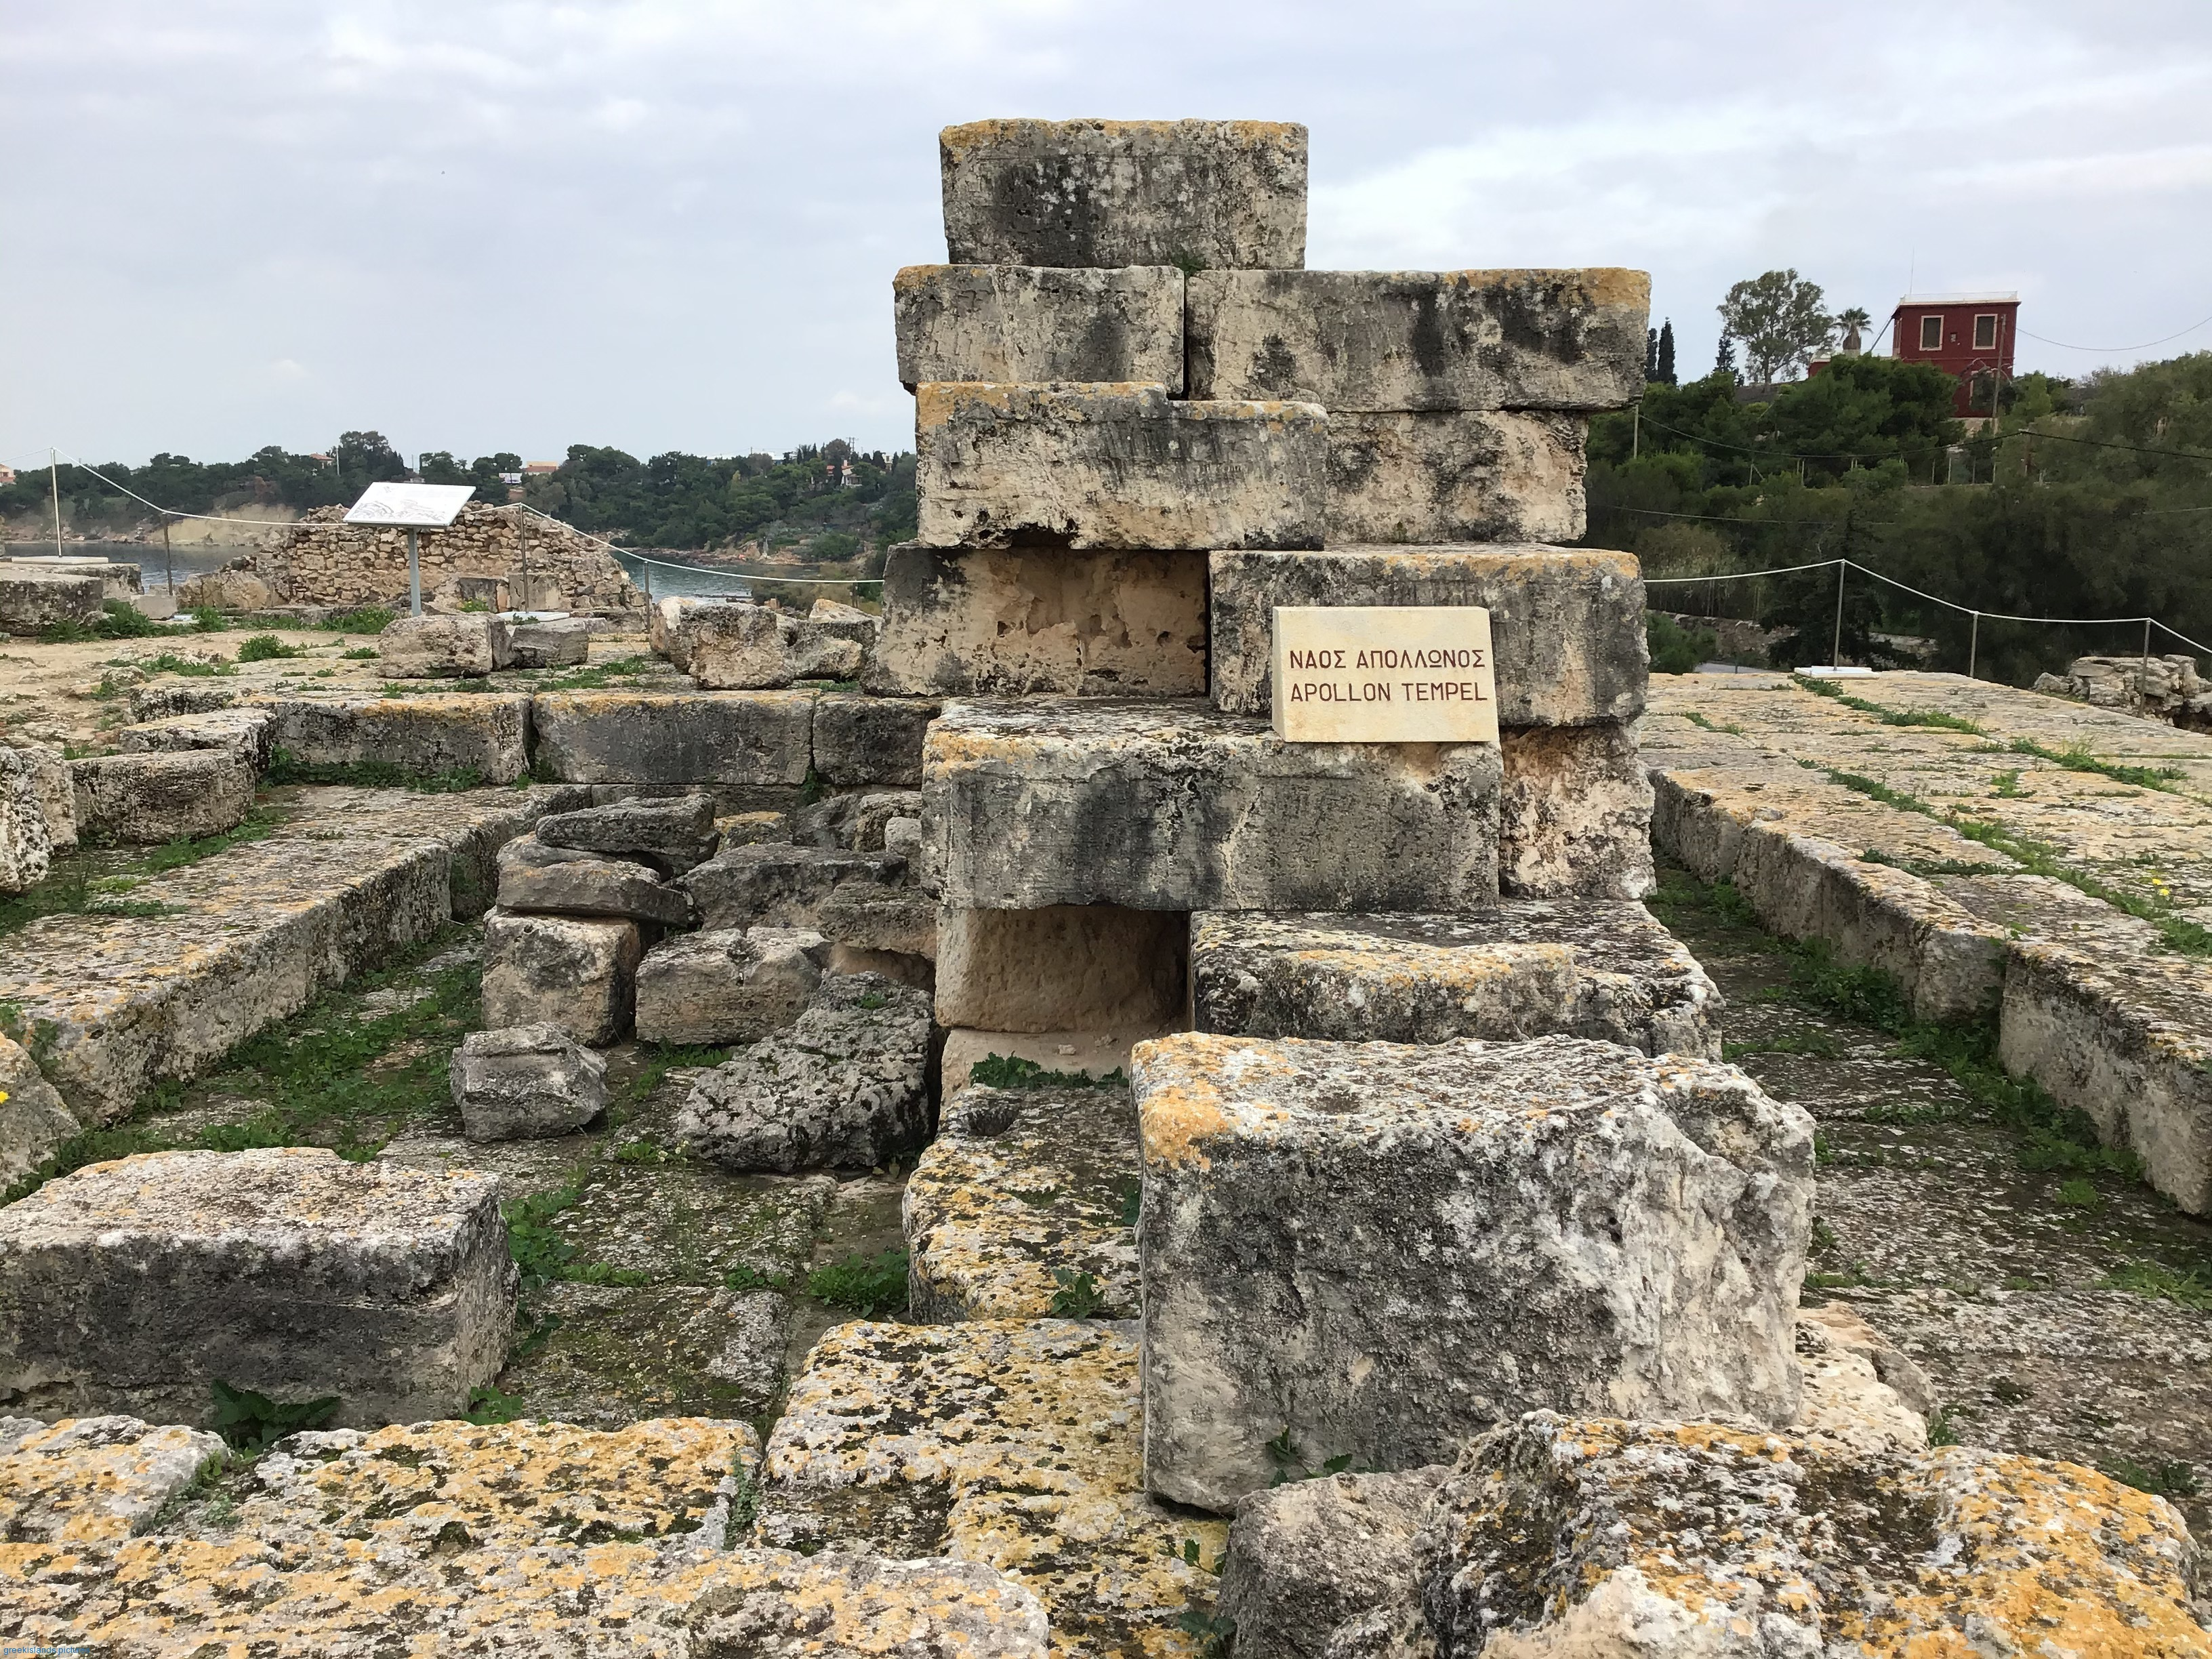 The ruins of the Temple of Apollo.